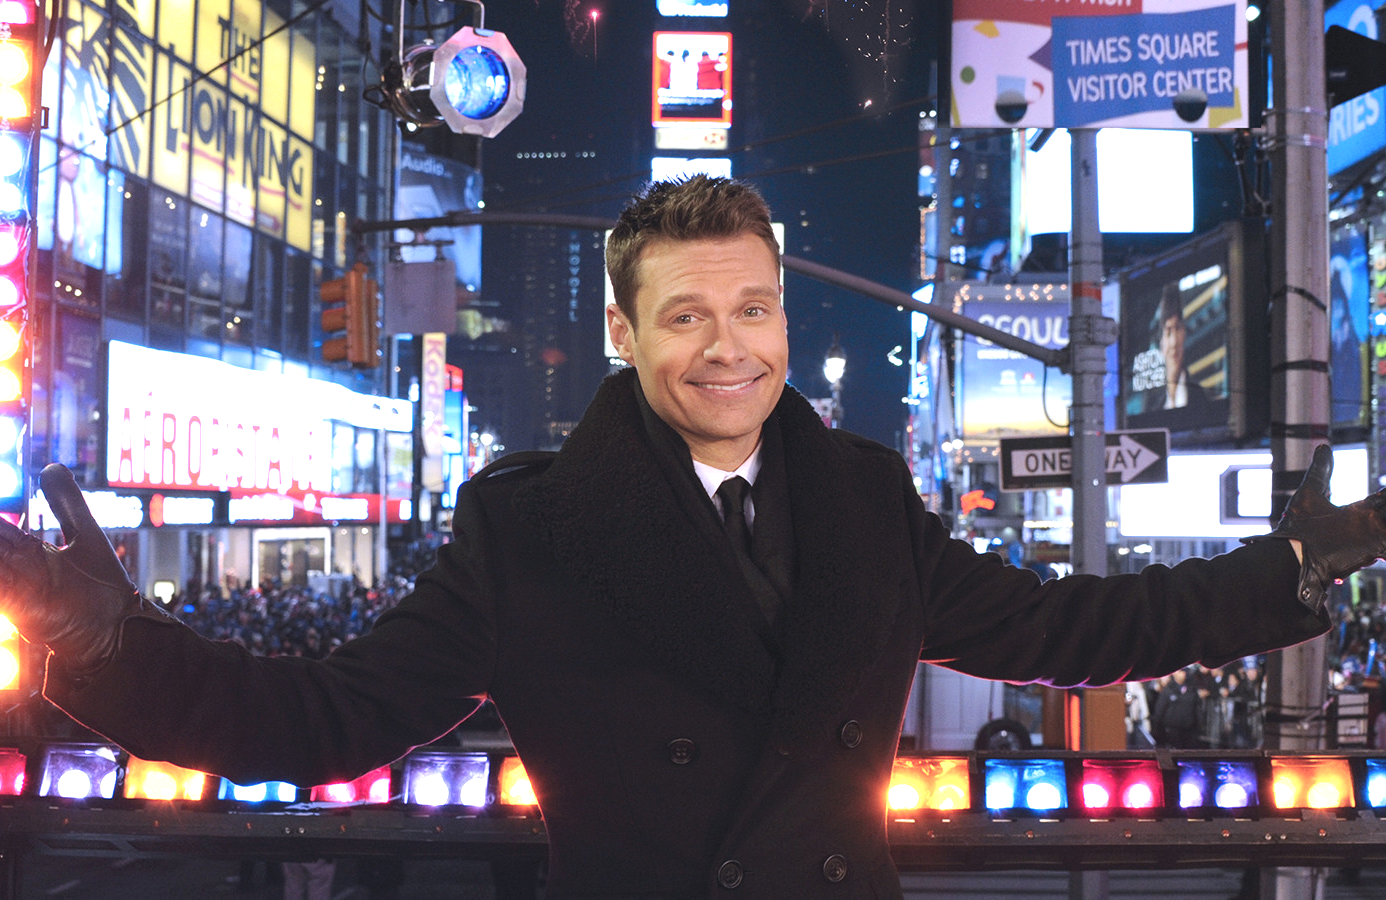 Ryan Seacrest hits Times Square for this year's edition of Dick Clark's New Year's Rockin' Eve With Ryan Seacrest (Photo: ABC)